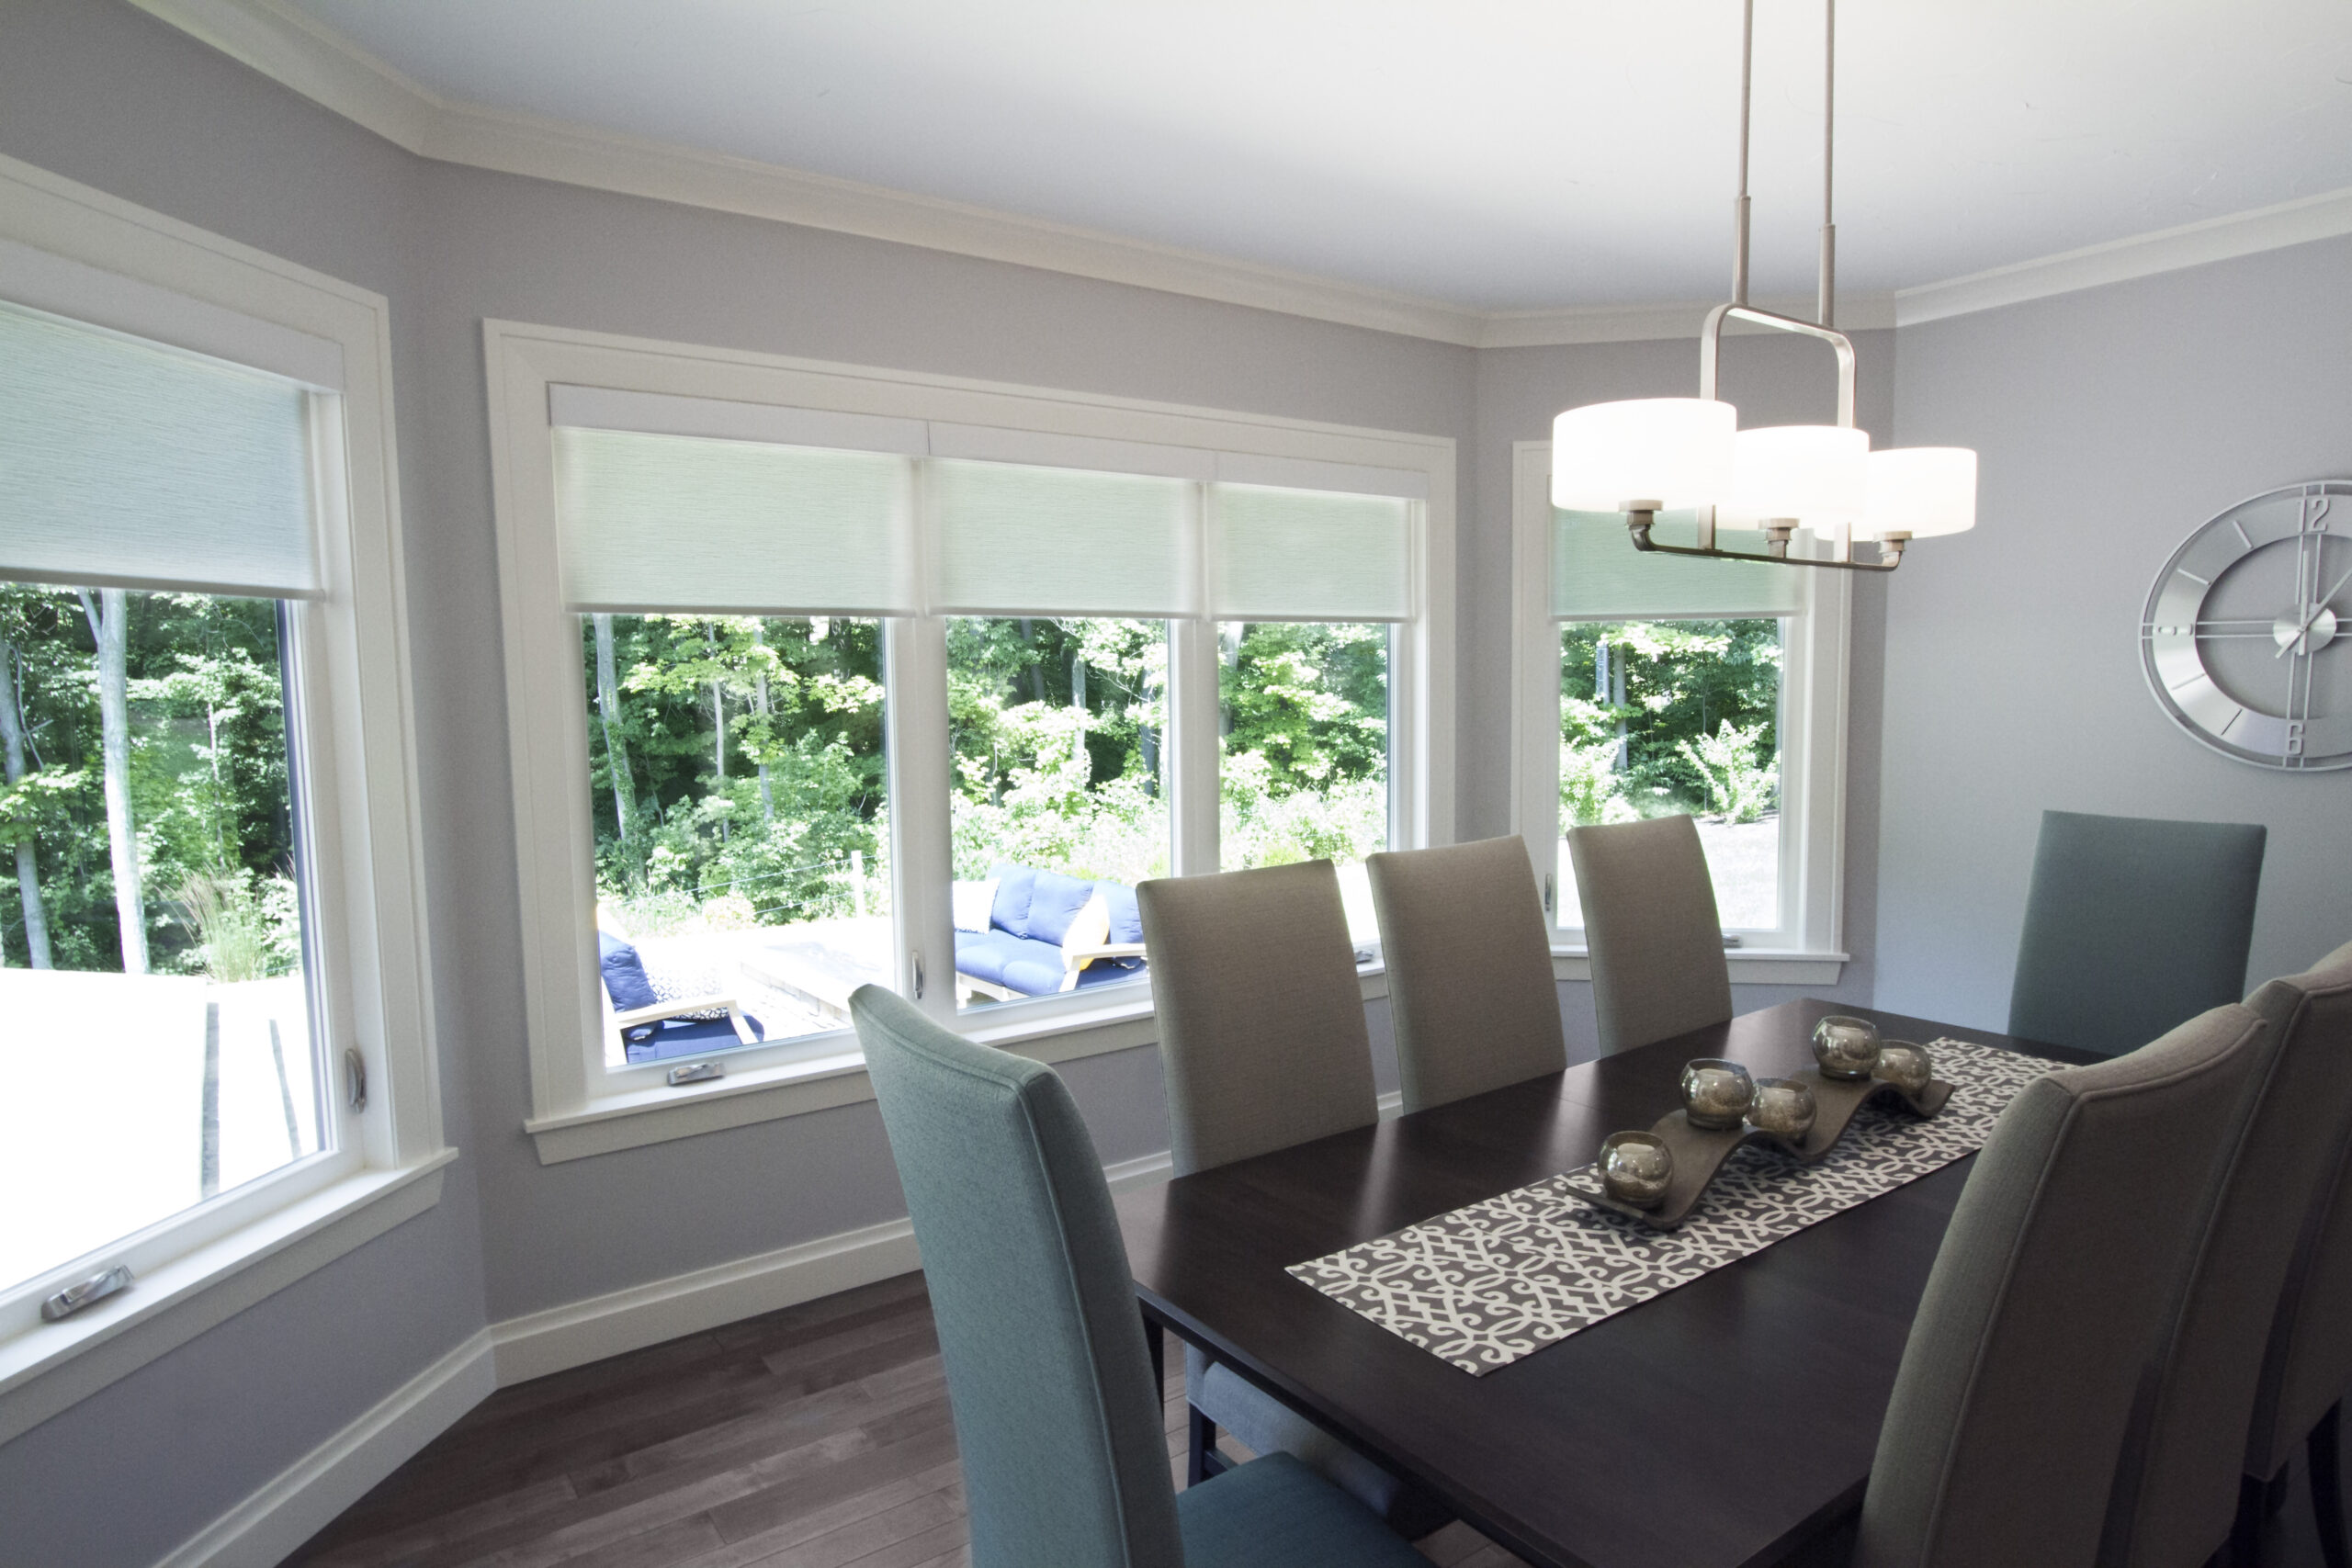 Energy Windoes LLC is your replacement windows expert.